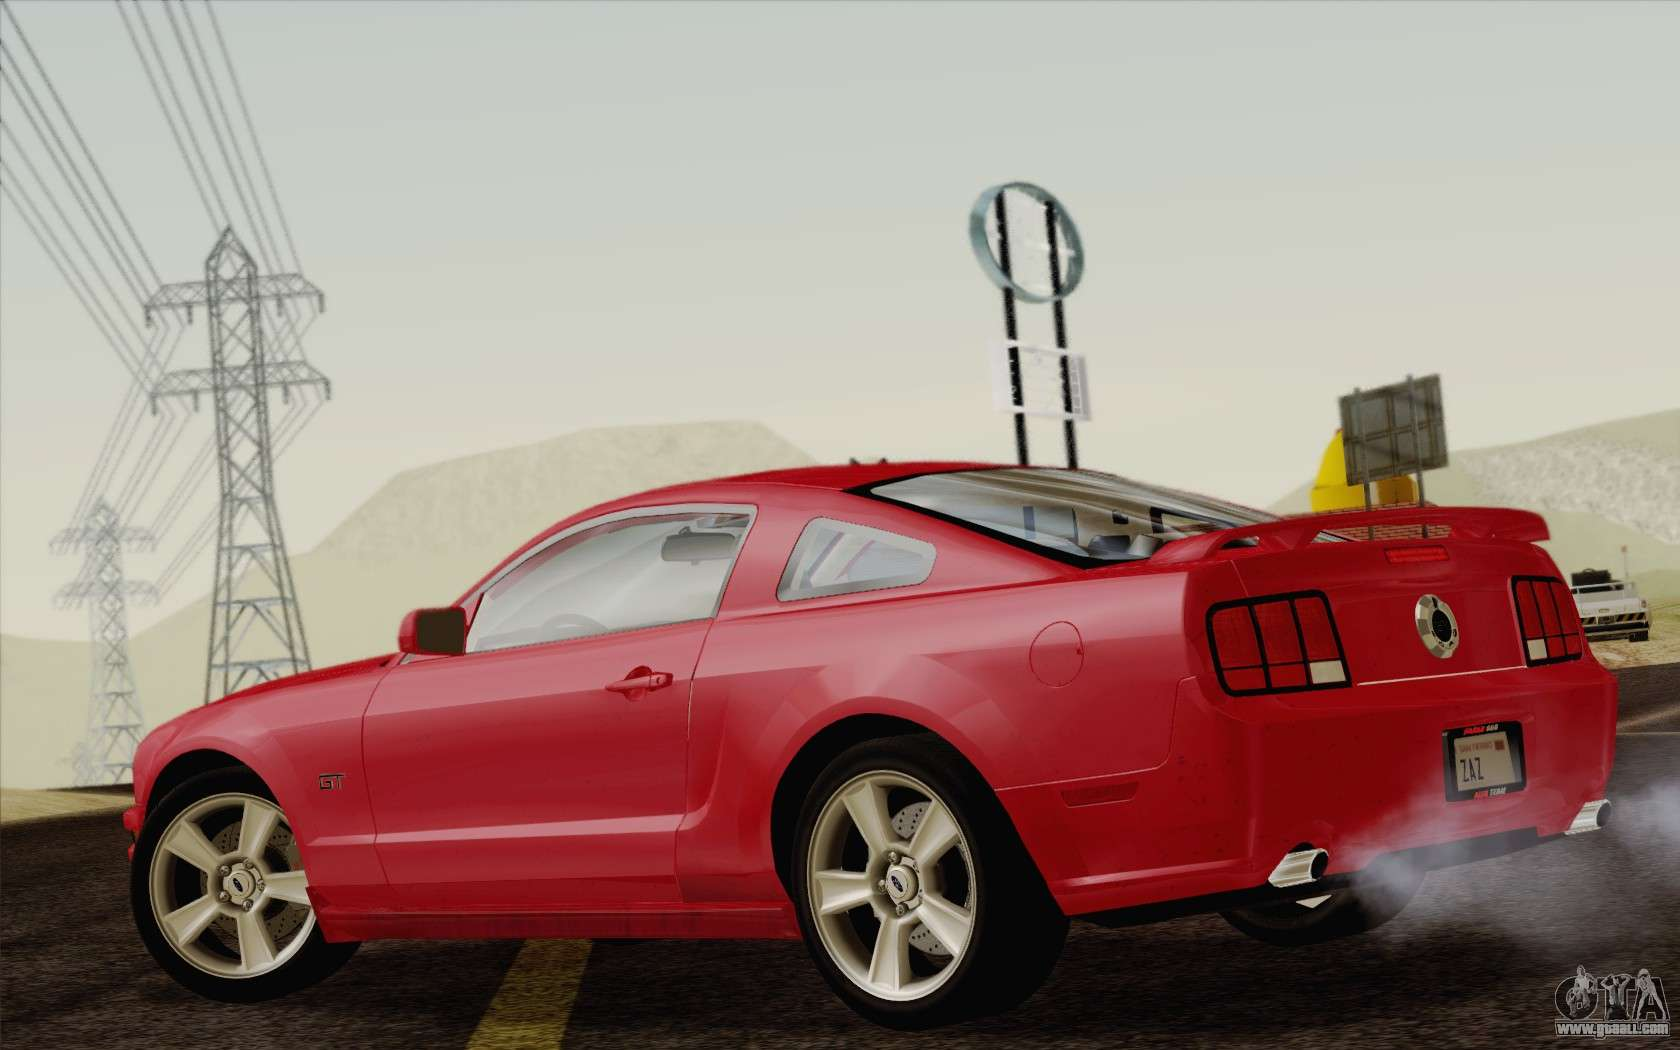 More powerful mustang gt variants are powered by a 5.0l v8. Ford Mustang Gt 2005 For Gta San Andreas